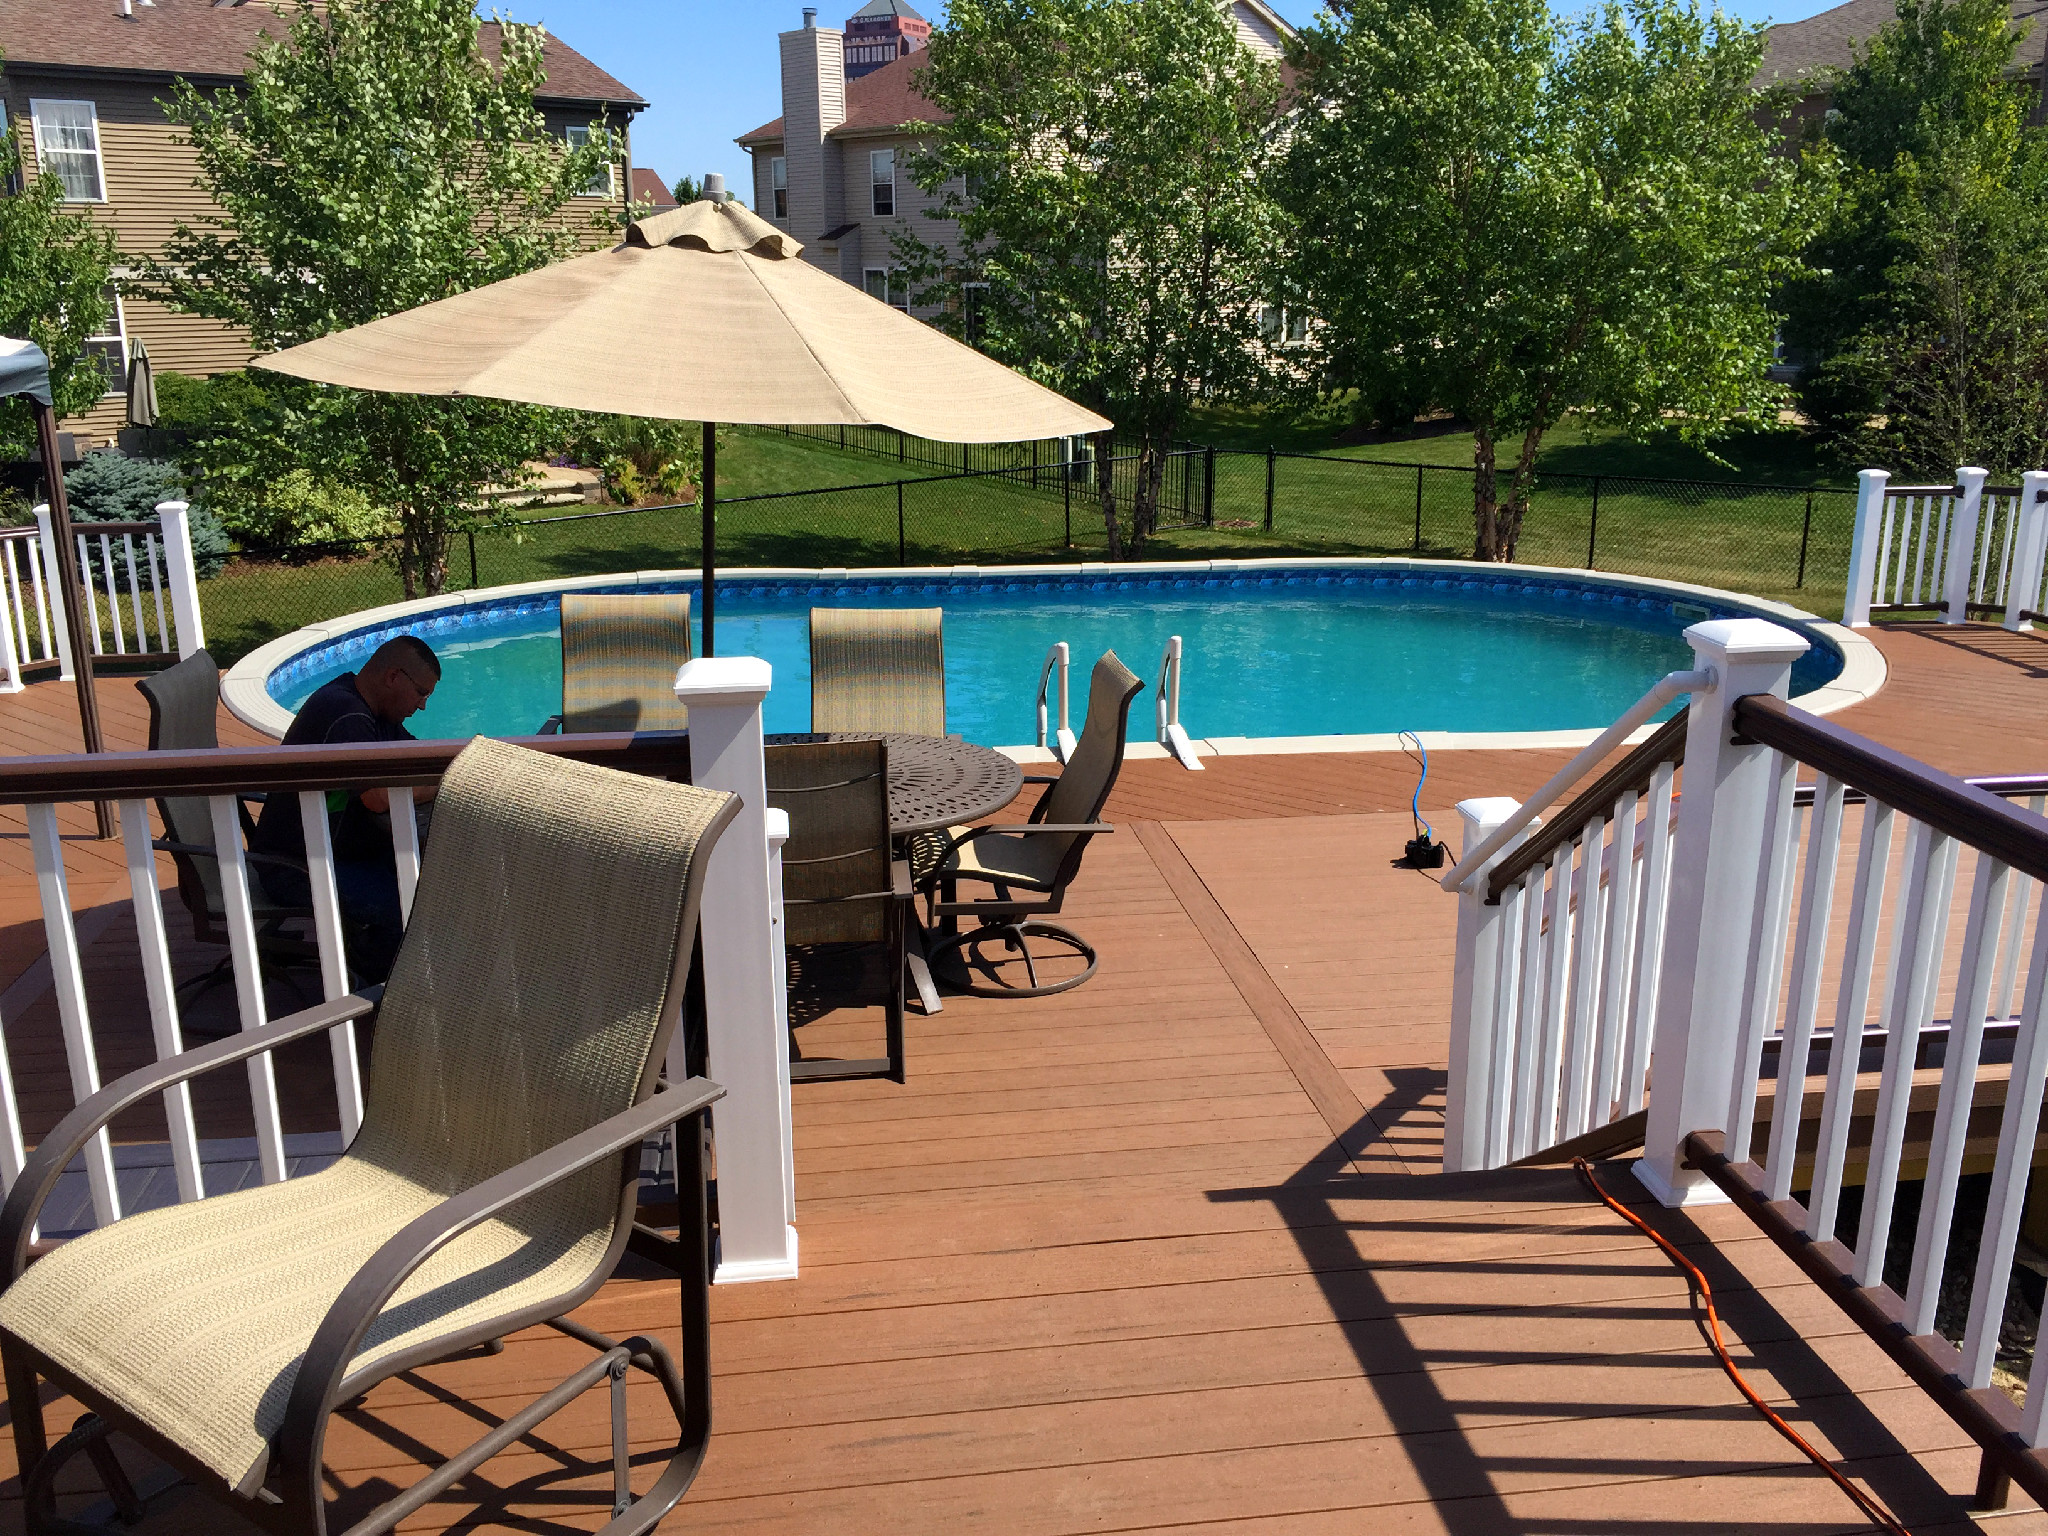 In Ground Pool Decks (Patio Pool Decks)